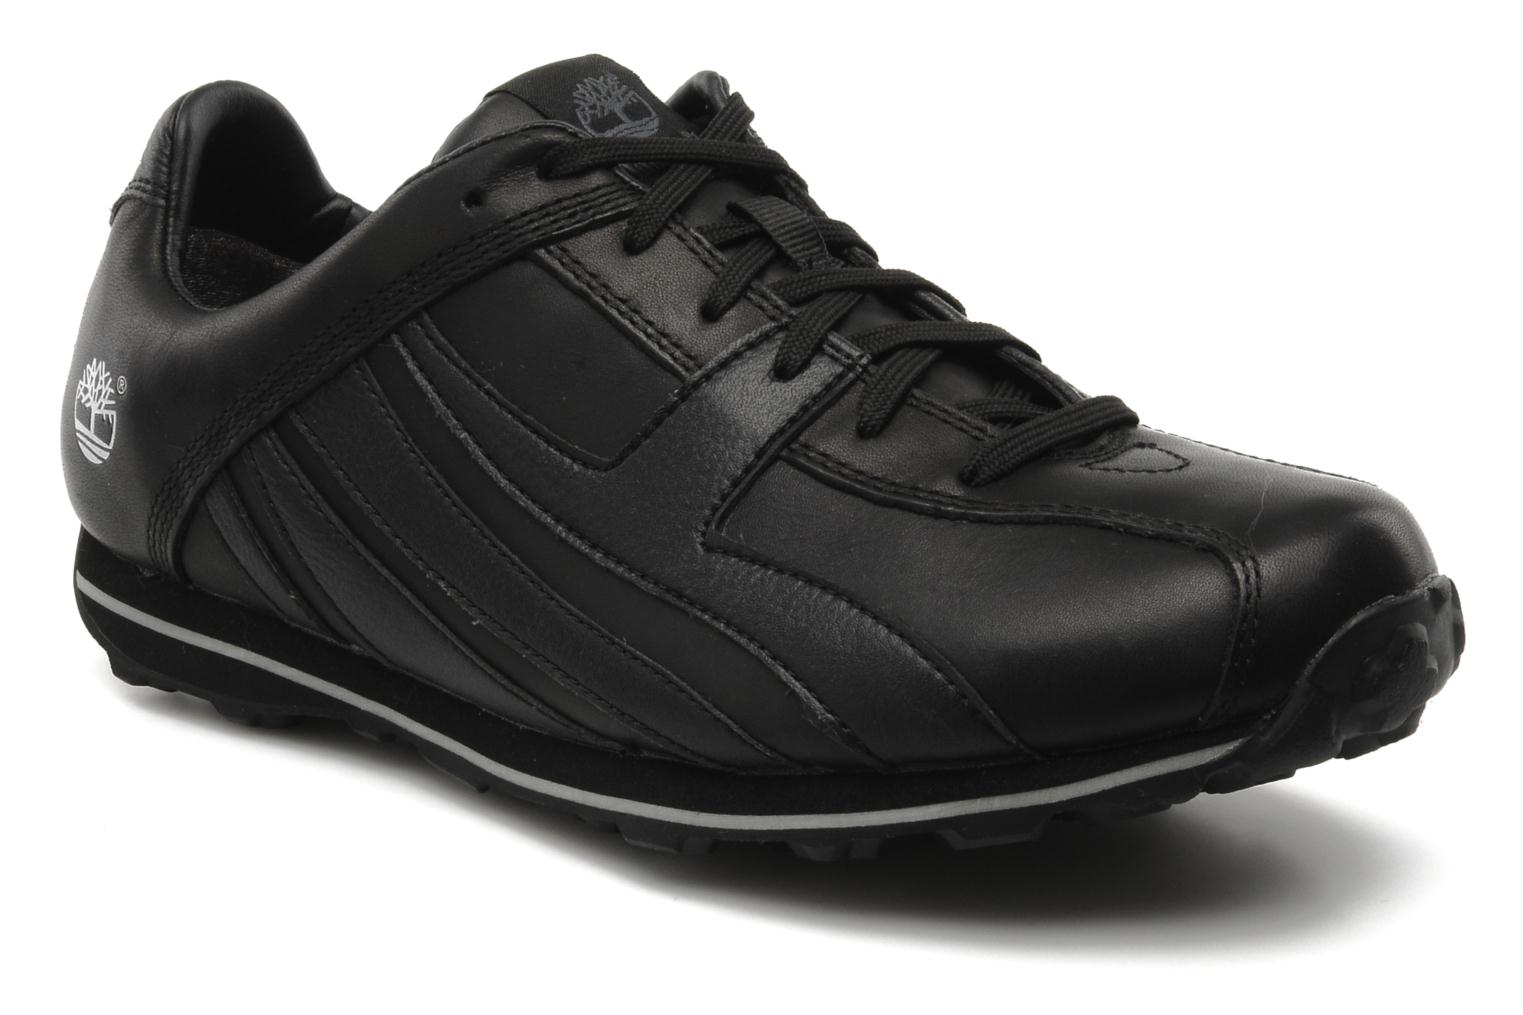 Trainer Low Black Smooth